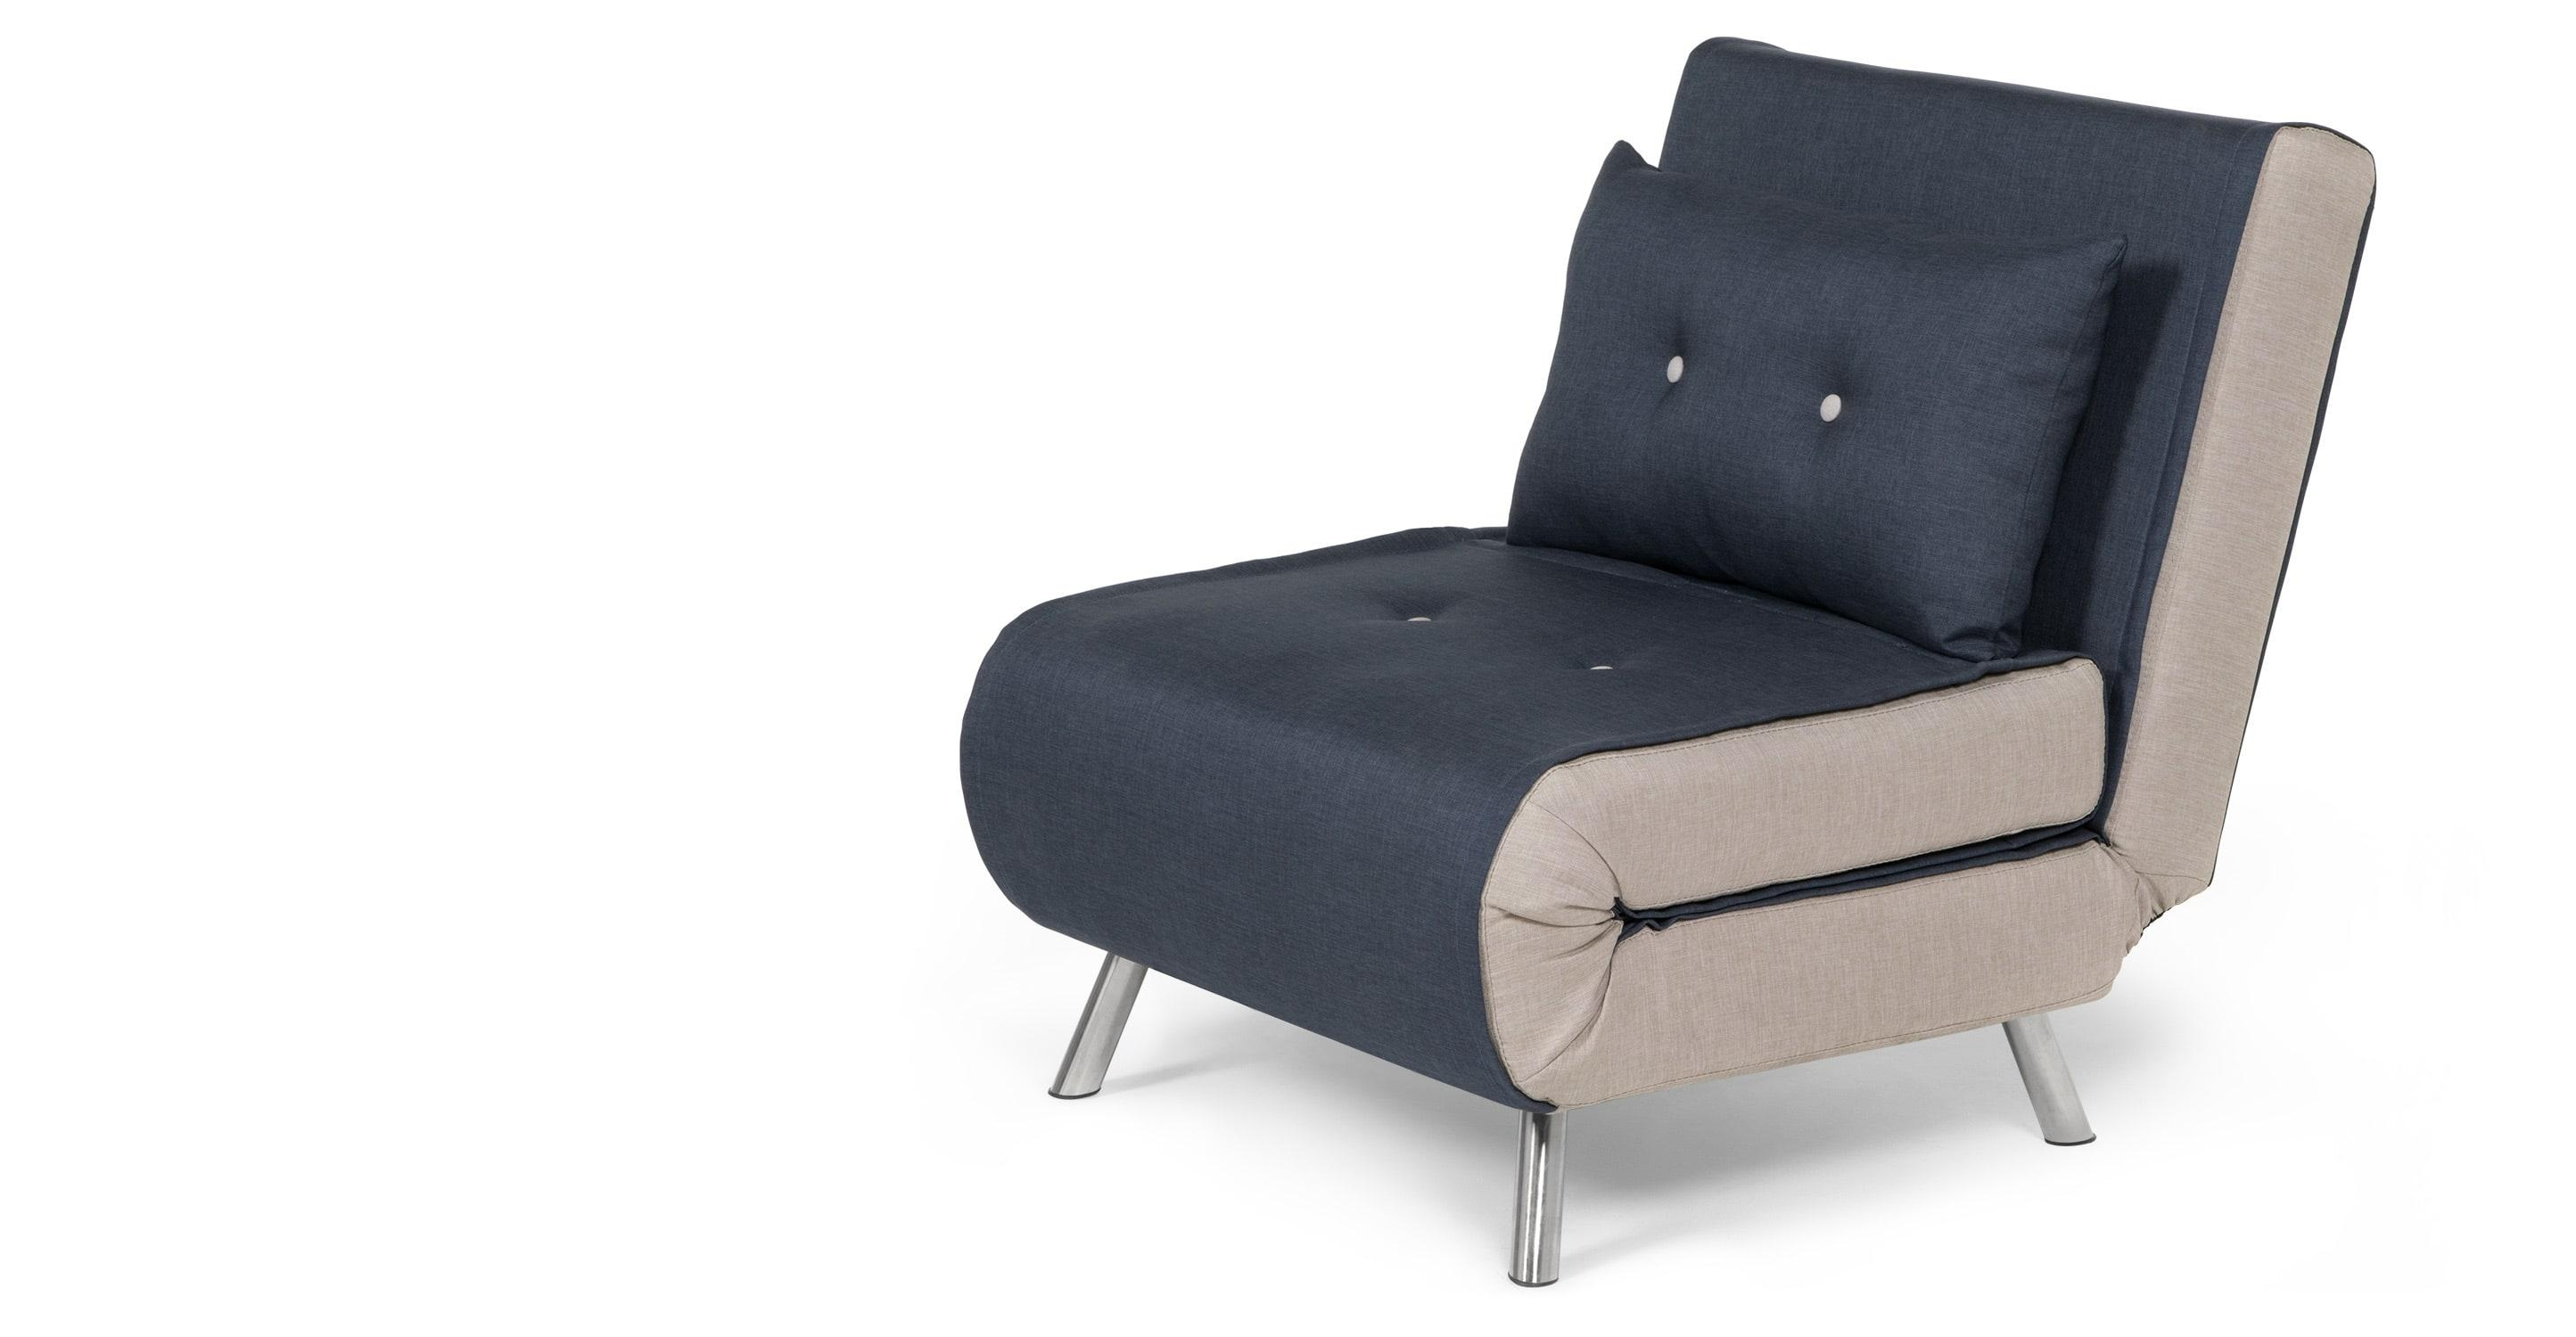 Haru Single Sofa Bed, Quartz Blue | Made Intended For Single Seat Sofa Chairs (Image 9 of 20)